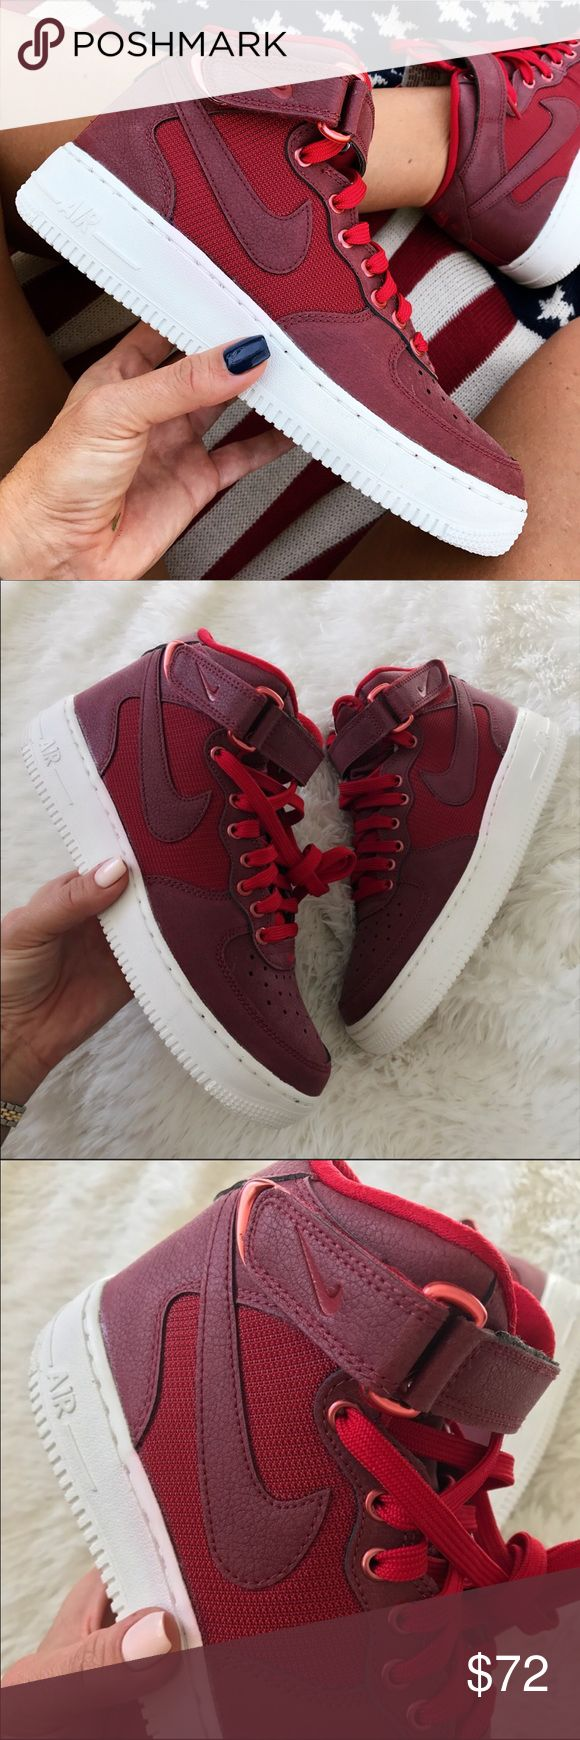 NEW  NIKE AIR FORCE 1 MID SZ 6.5 youth | 8 WOMAN NEW  NIKE AIR FORCE 1 MID SZ 6.5 youth | 8 WOMAN Nike Shoes Athletic Shoes